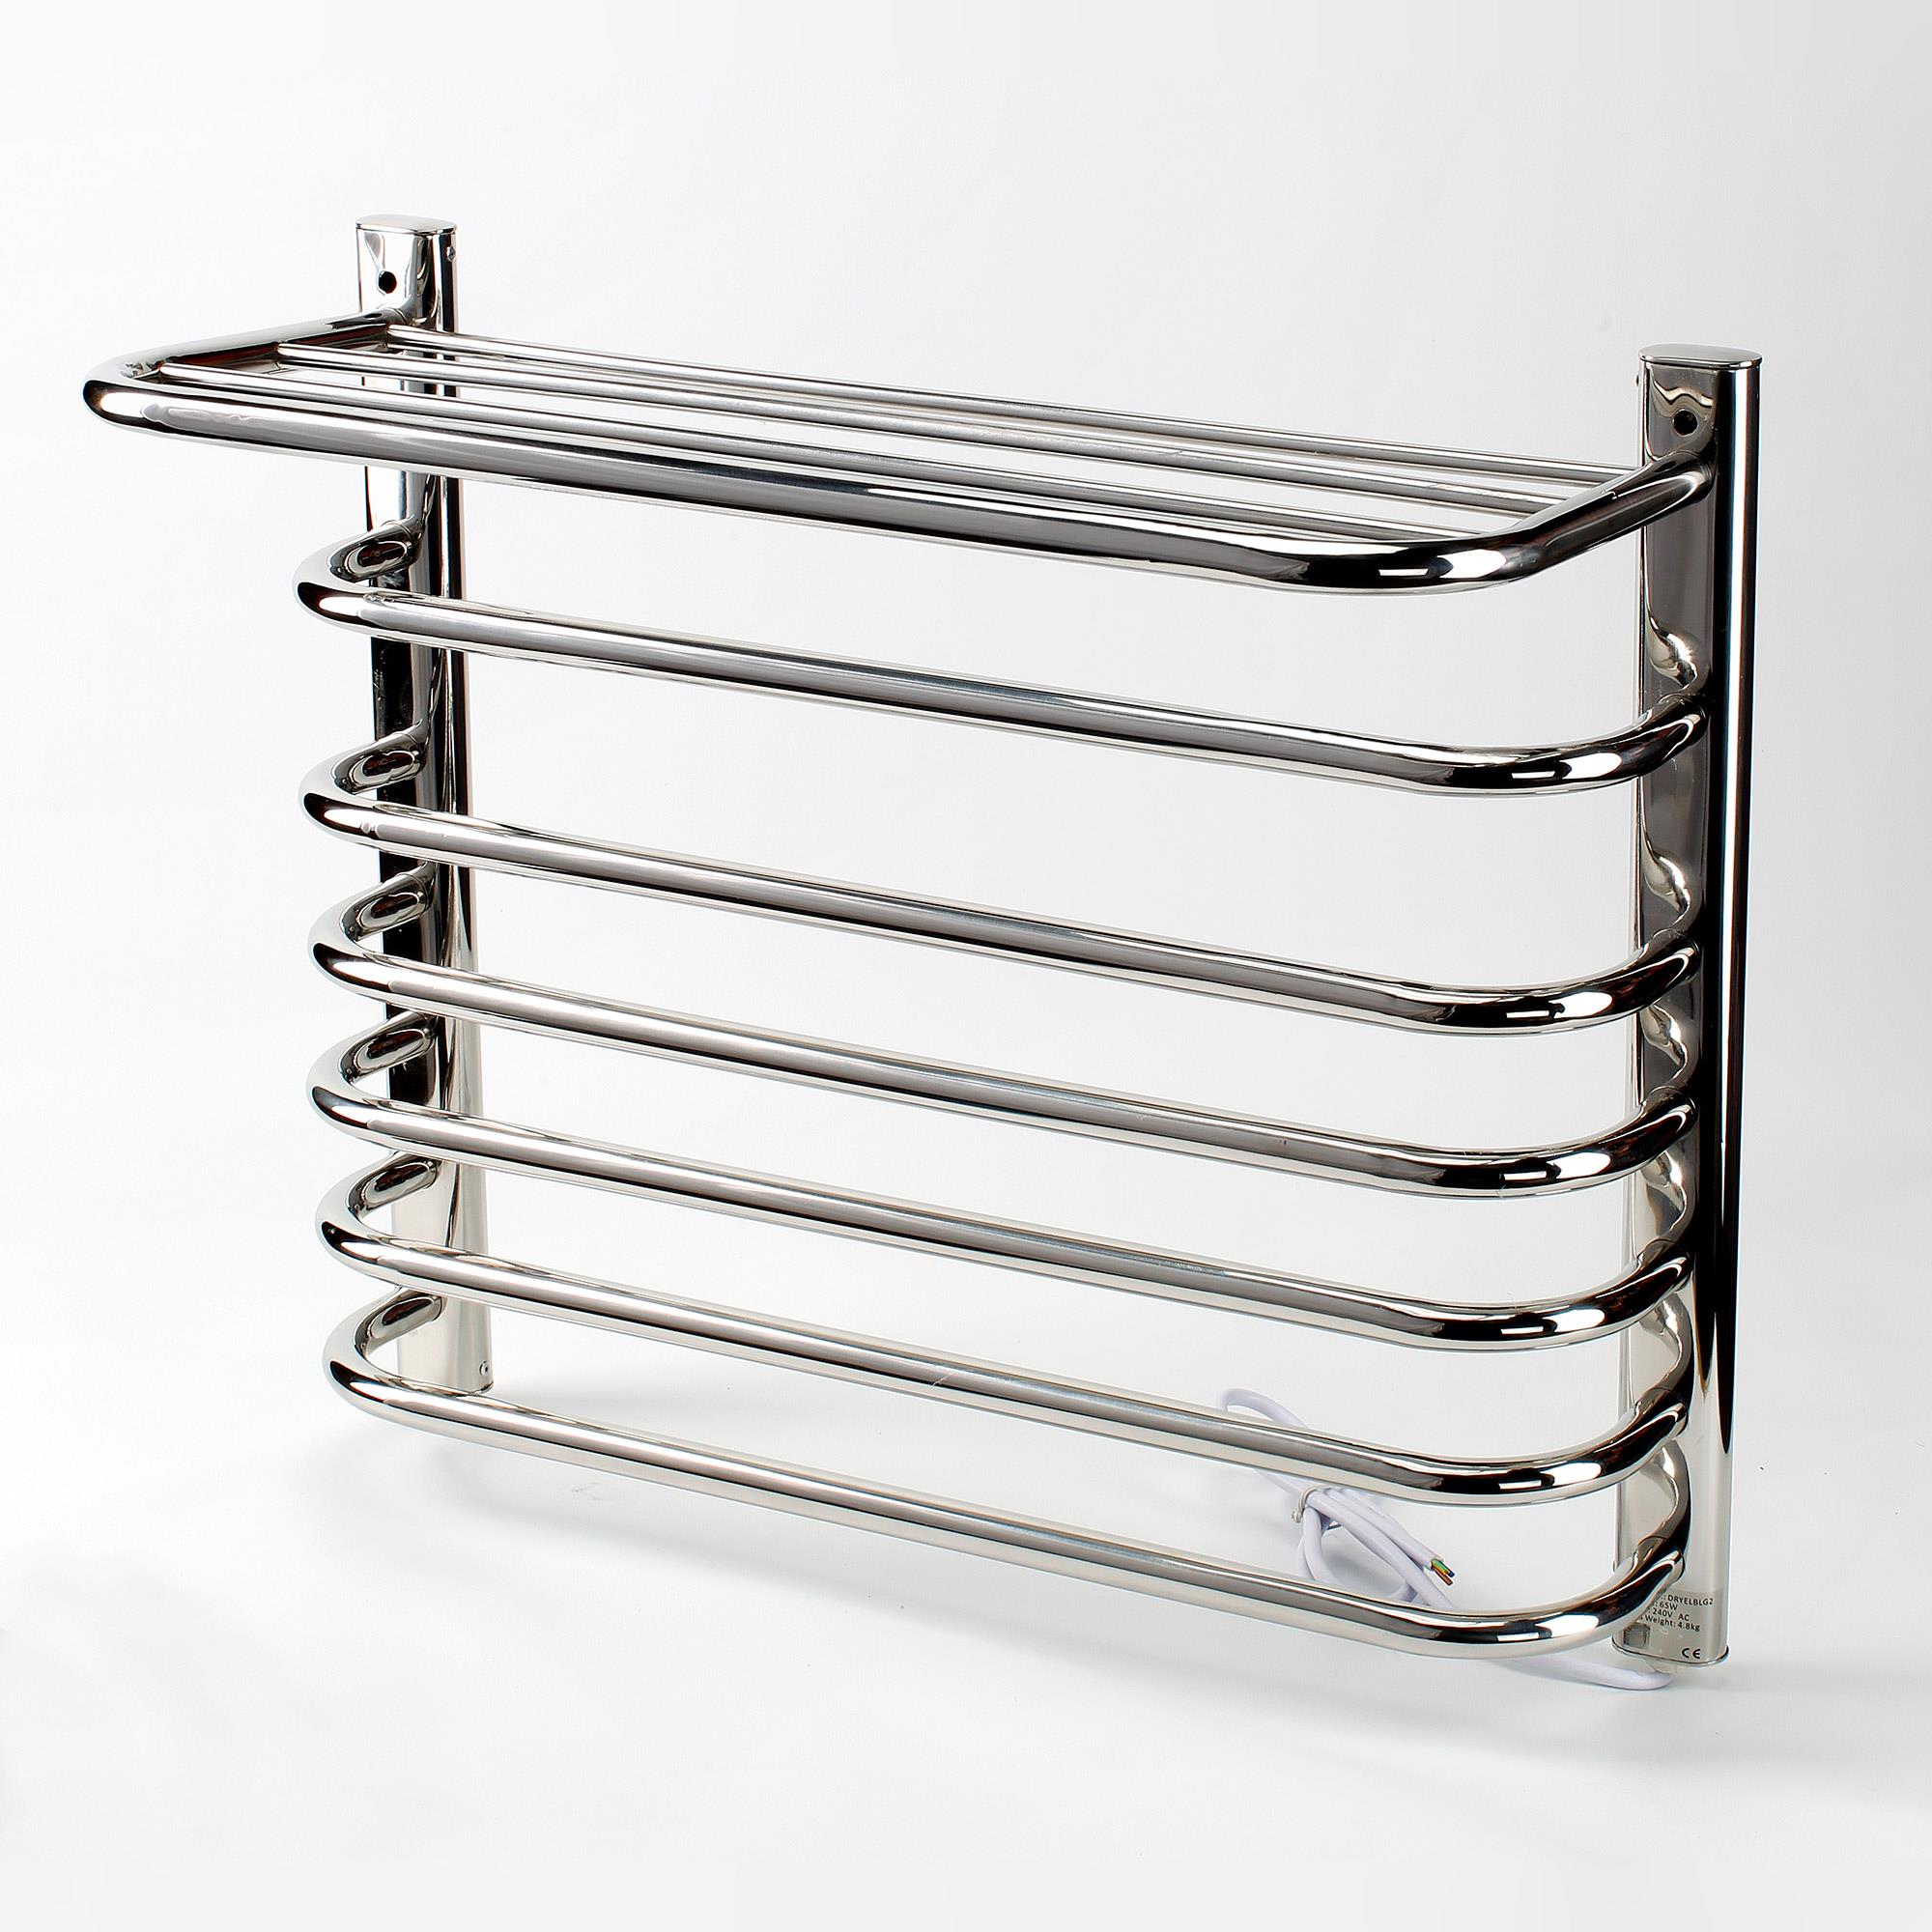 Electric Towel Rails: Chester Dry Electric Stainless Steel Towel Rail 600 X